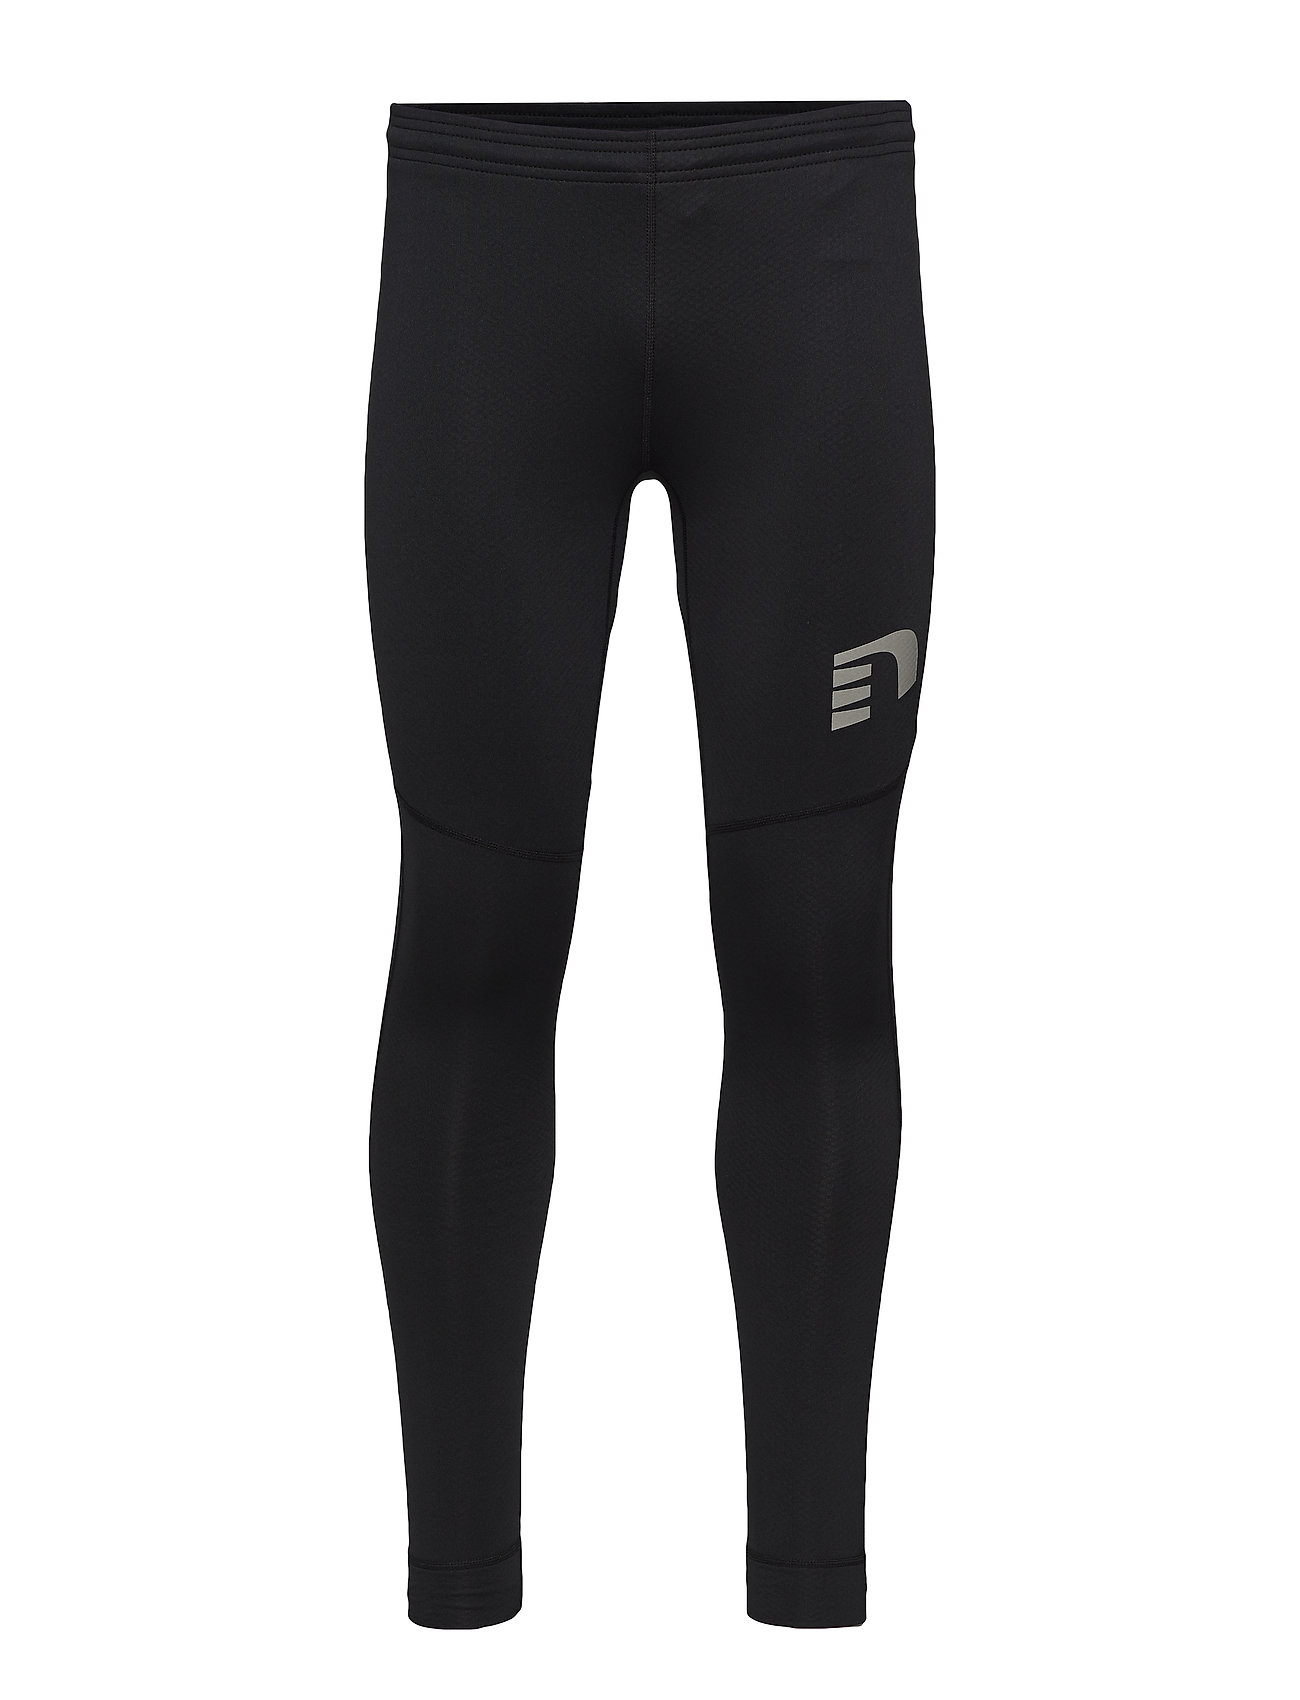 6ca517db Black Thermal Power Tights (Black) (57 €) - Newline - | Boozt.com